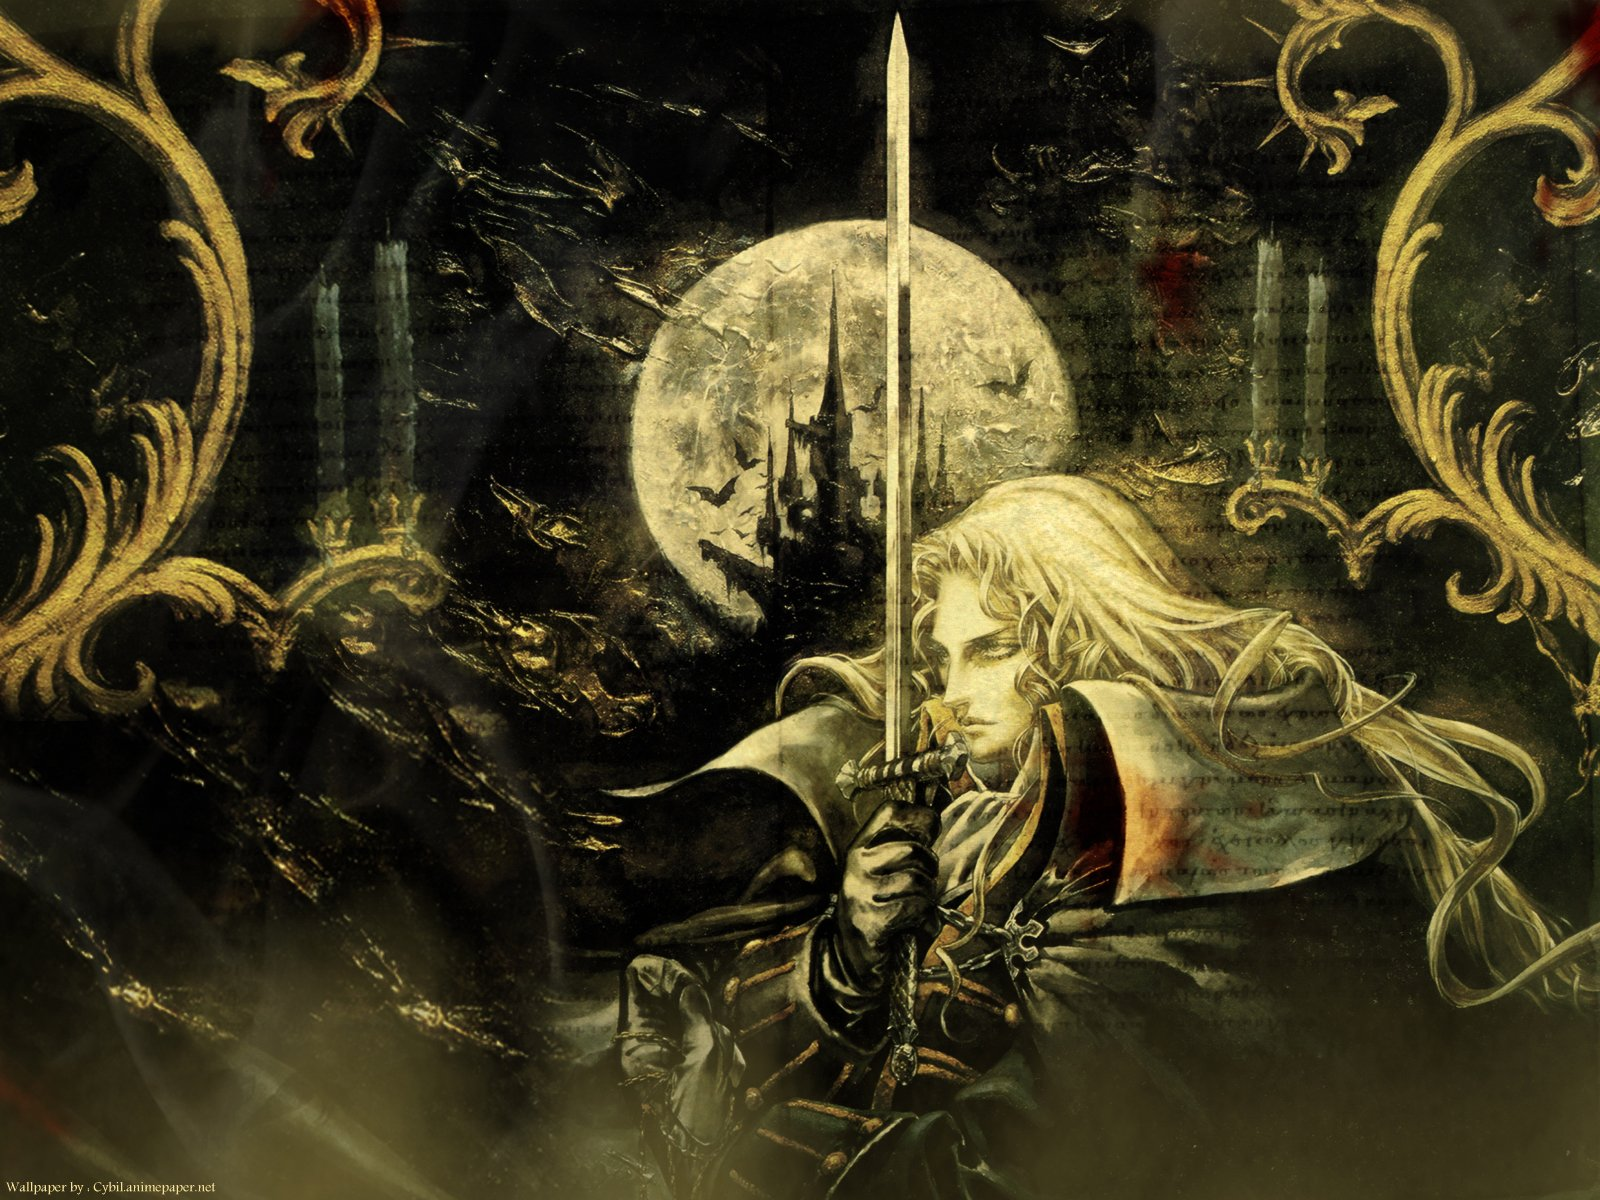 63 Castlevania Hd Wallpapers Background Images Wallpaper Abyss